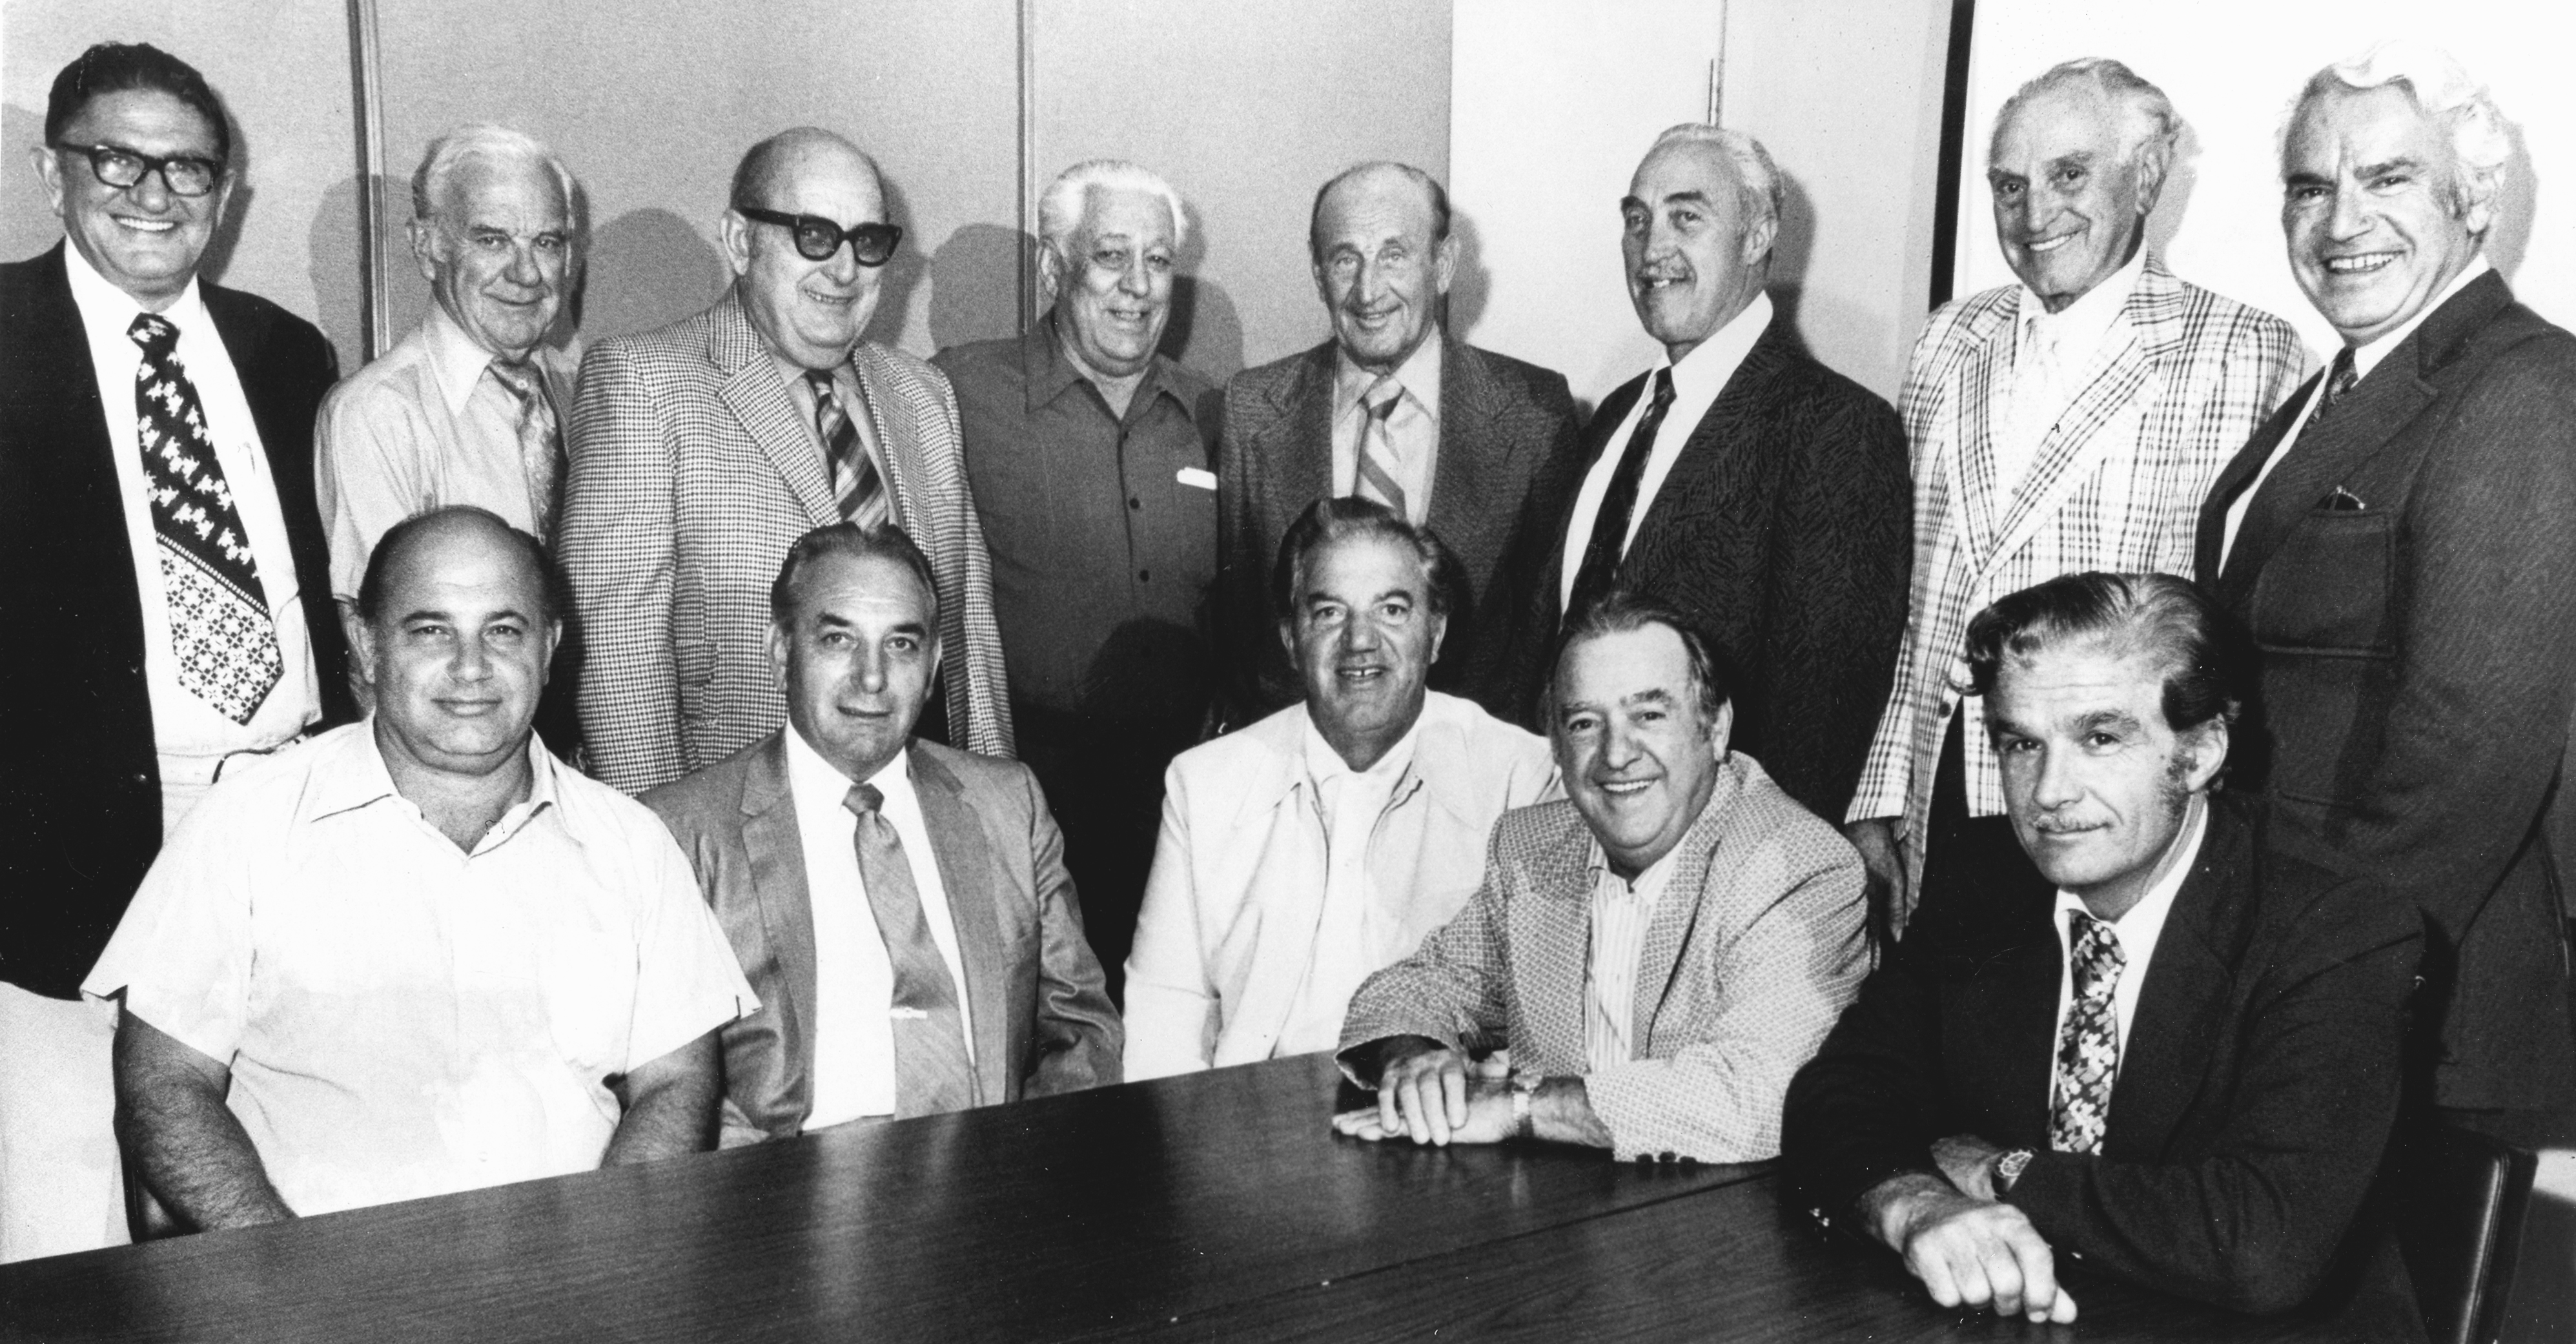 In 1955, a group of Italian-Americans from the San Francisco Bay Area come to Las Vegas to start the Golden Gate Casino. Original partners included Italo Ghelfi, Robert Picardo, Al Durante, Leo Massaro, Dan Fiorito and restaurateur Tiny Naylor.